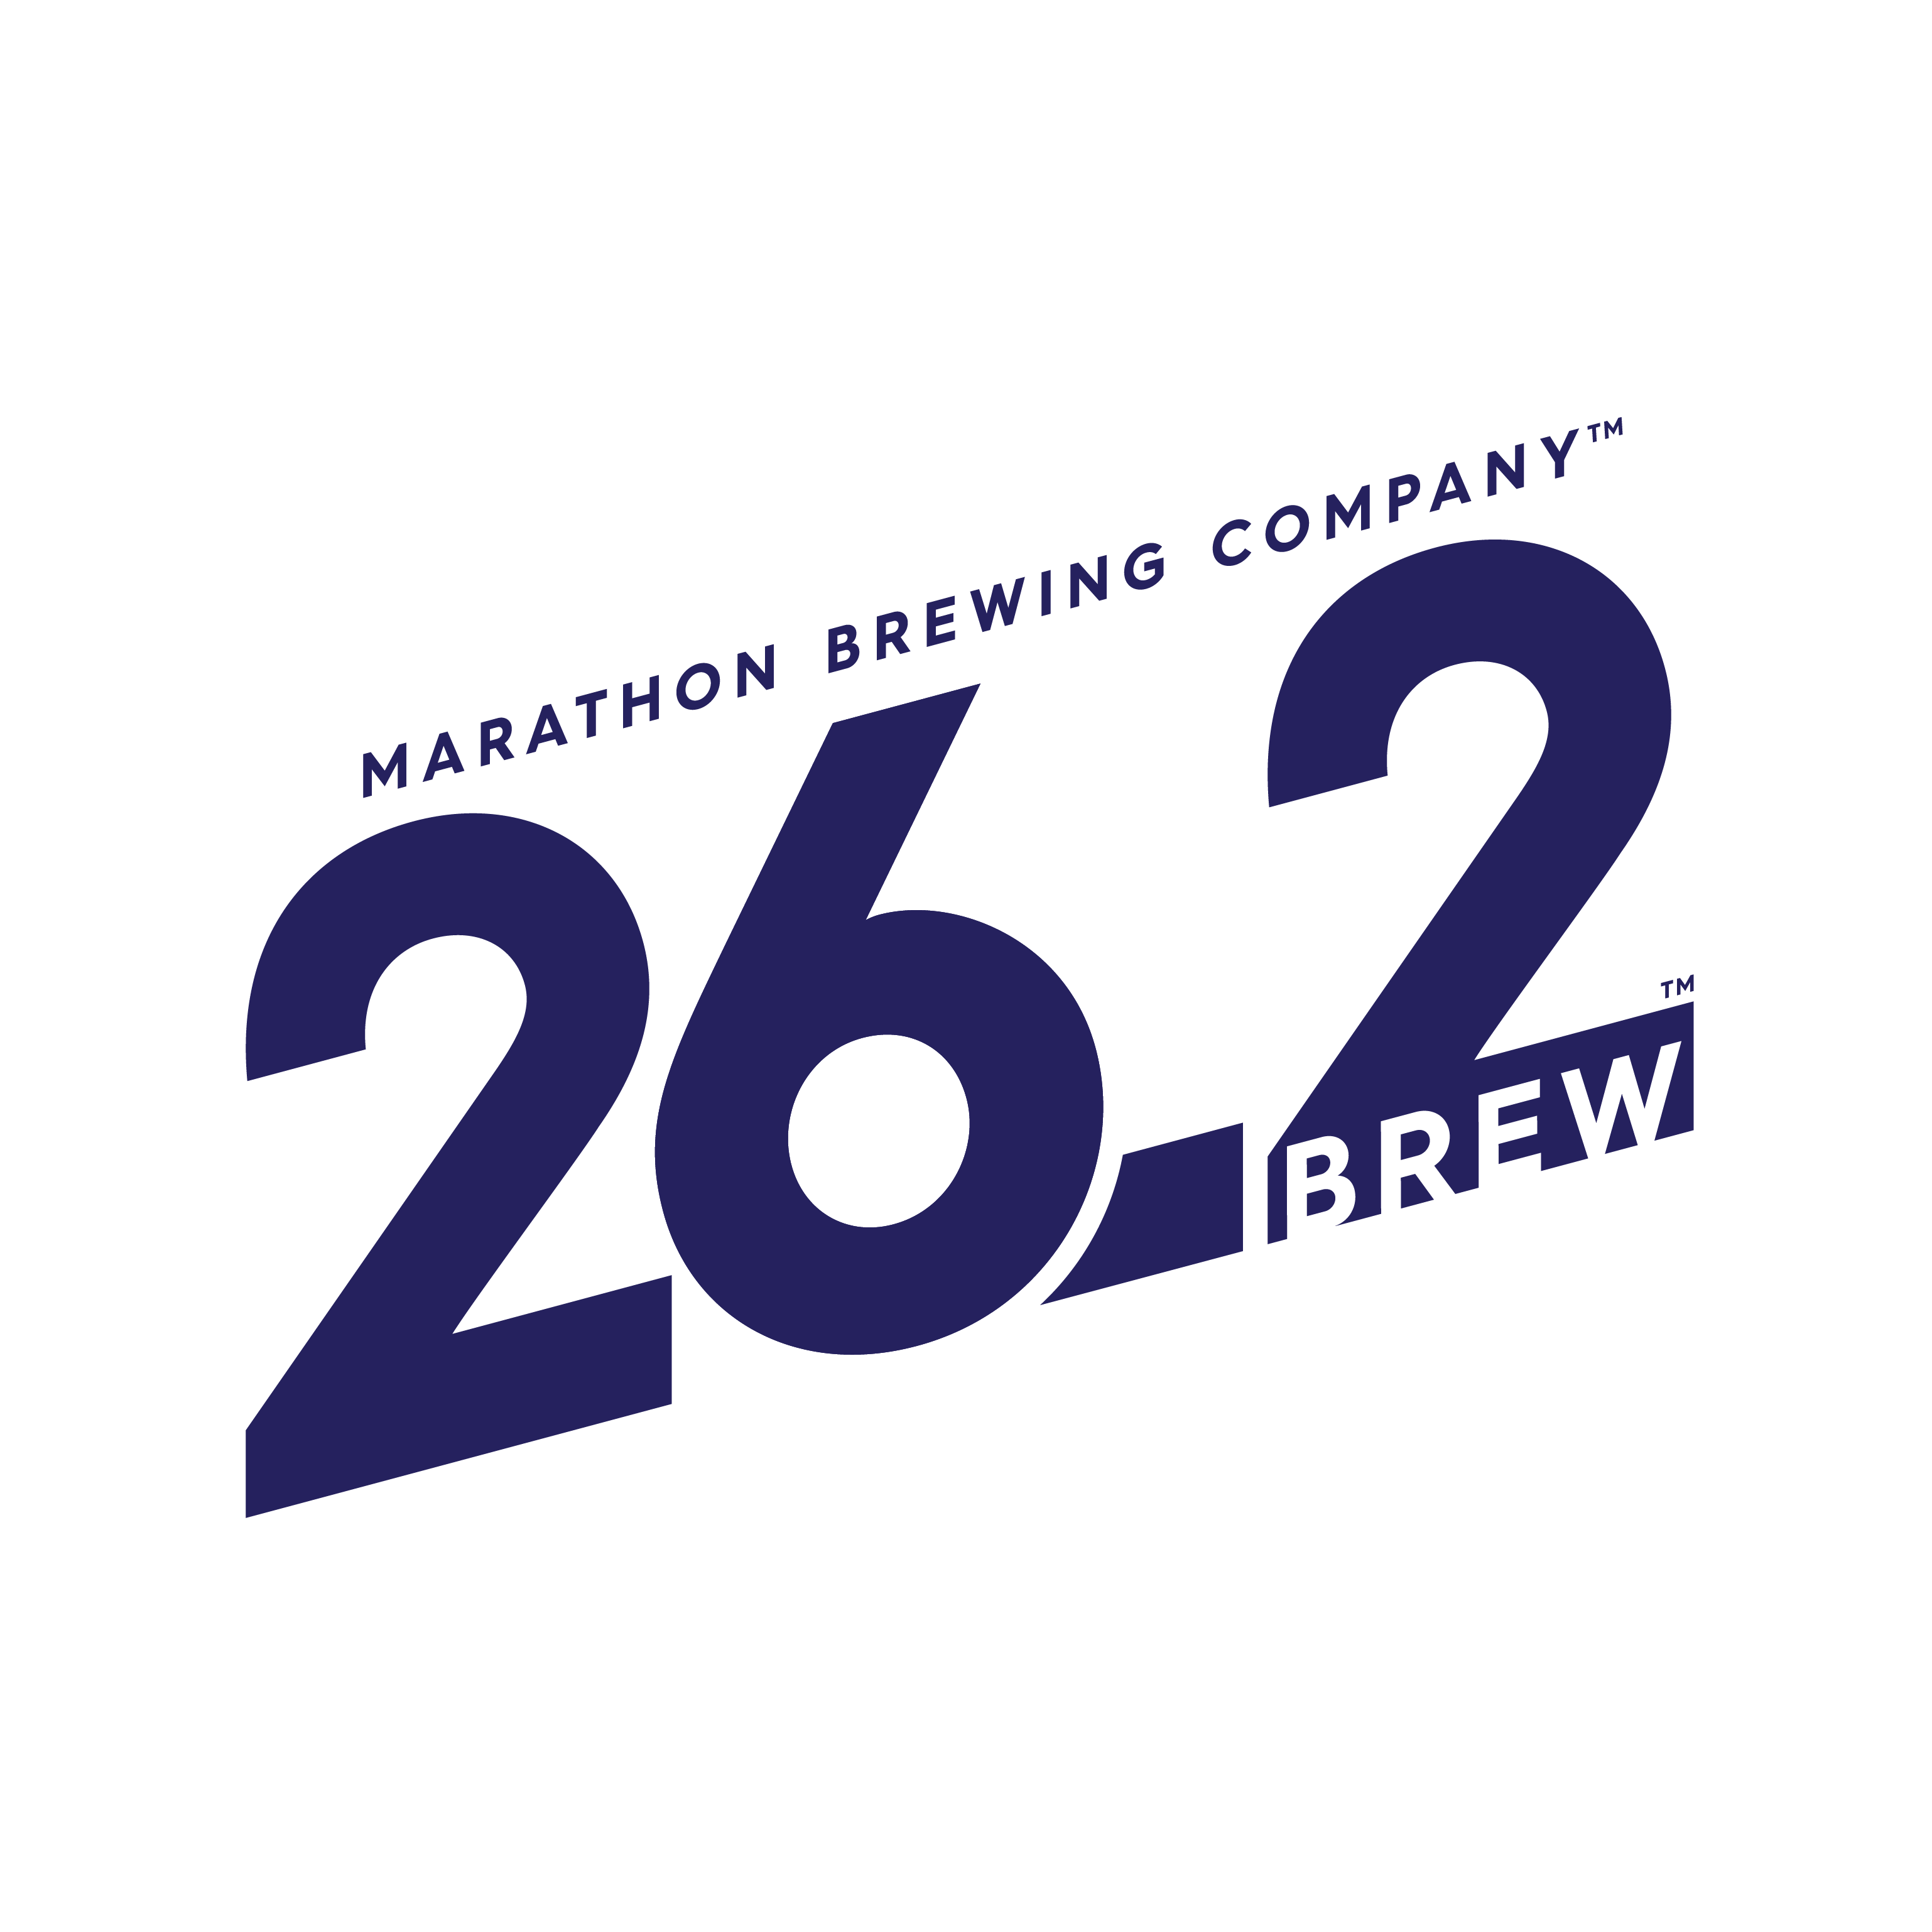 Marathon Brewing Co